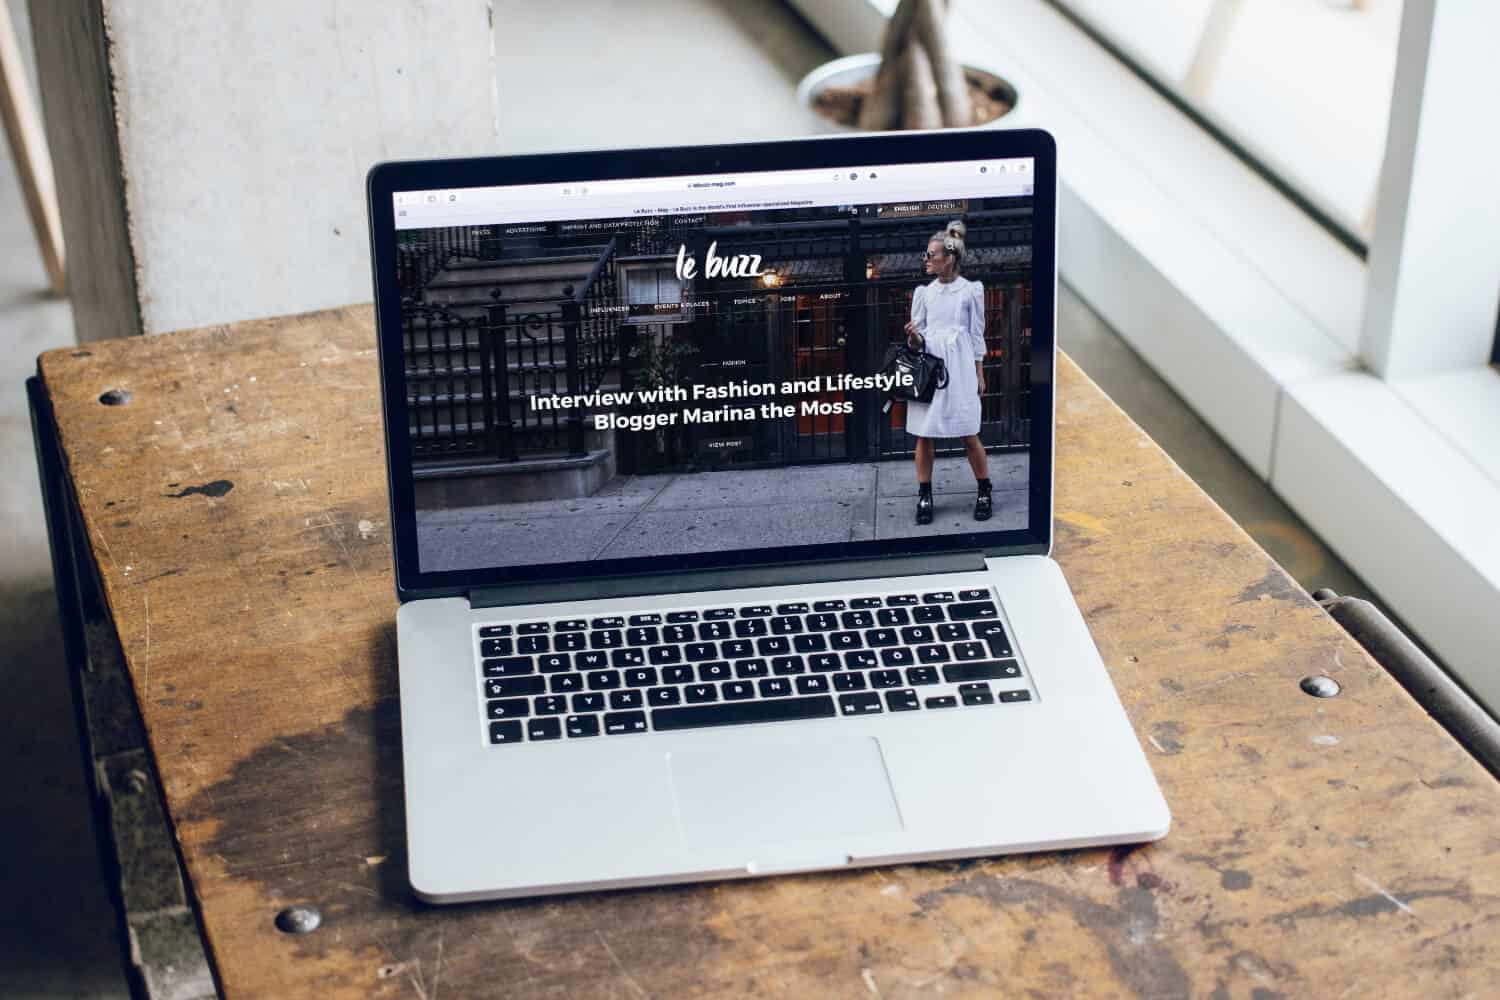 Laptop on a table with website landing page open